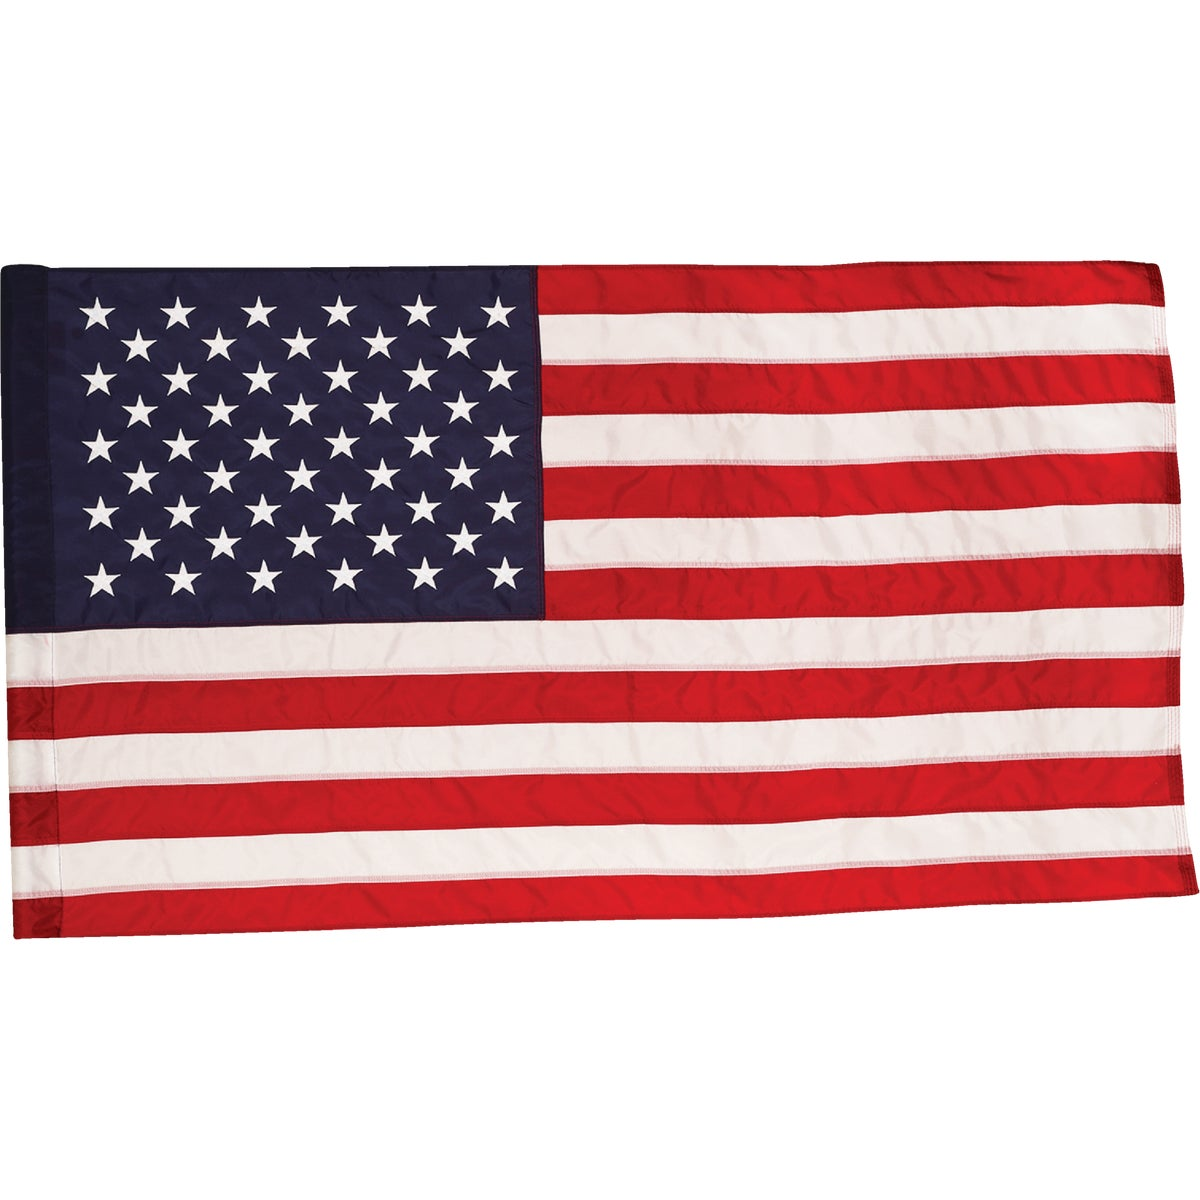 DECORATIVE US FLAG